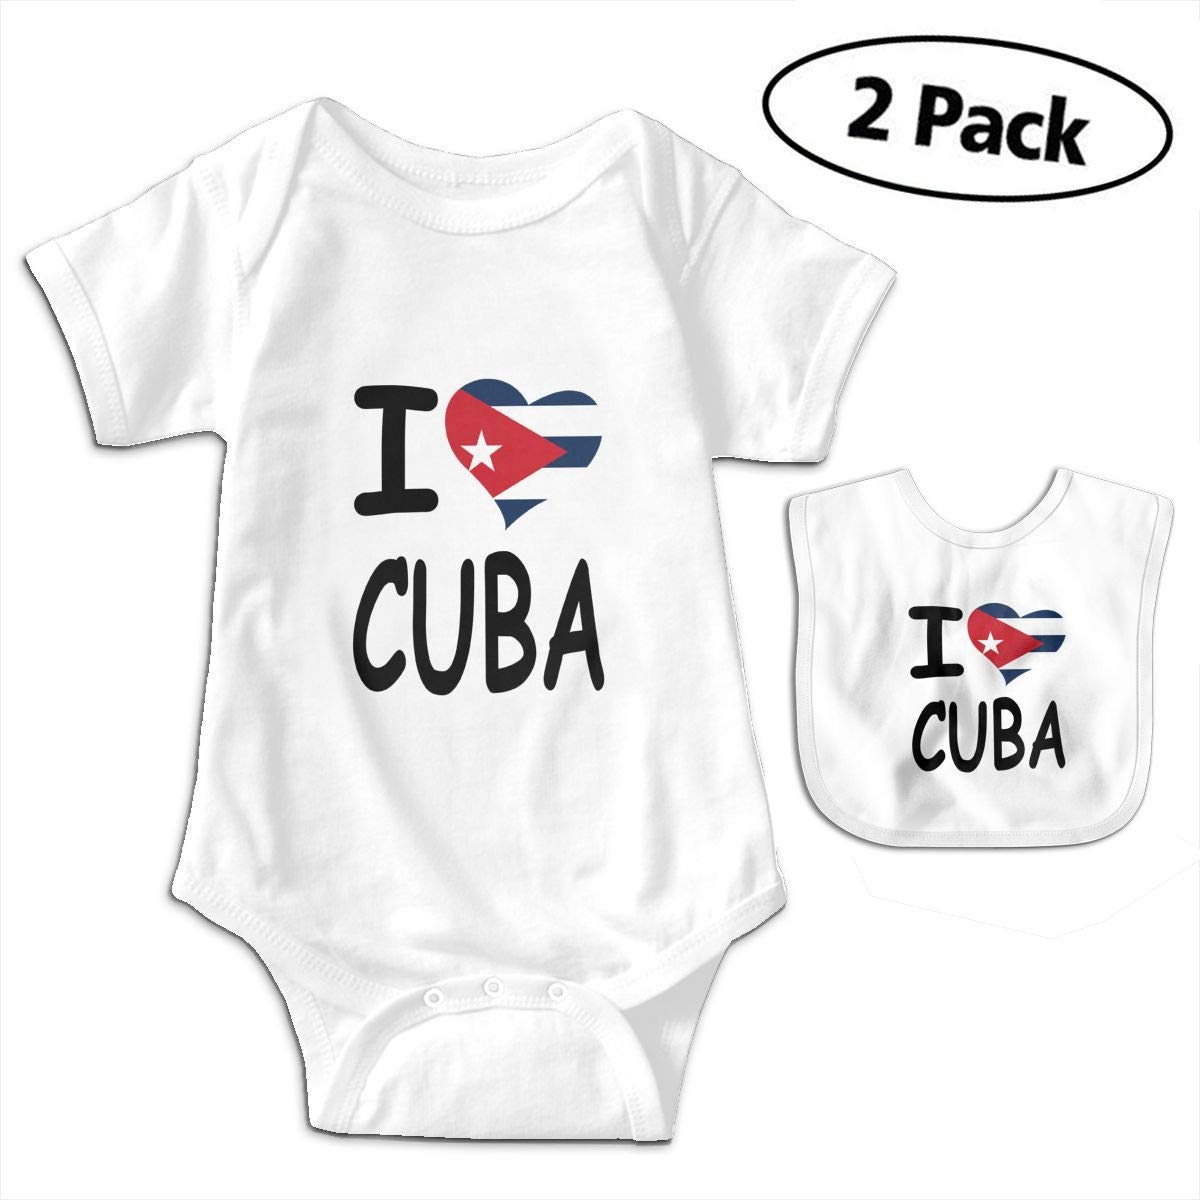 I Love Cuba Infant Baby Boys Girls Short Sleeve Romper Bodysuit Outfit Clothes